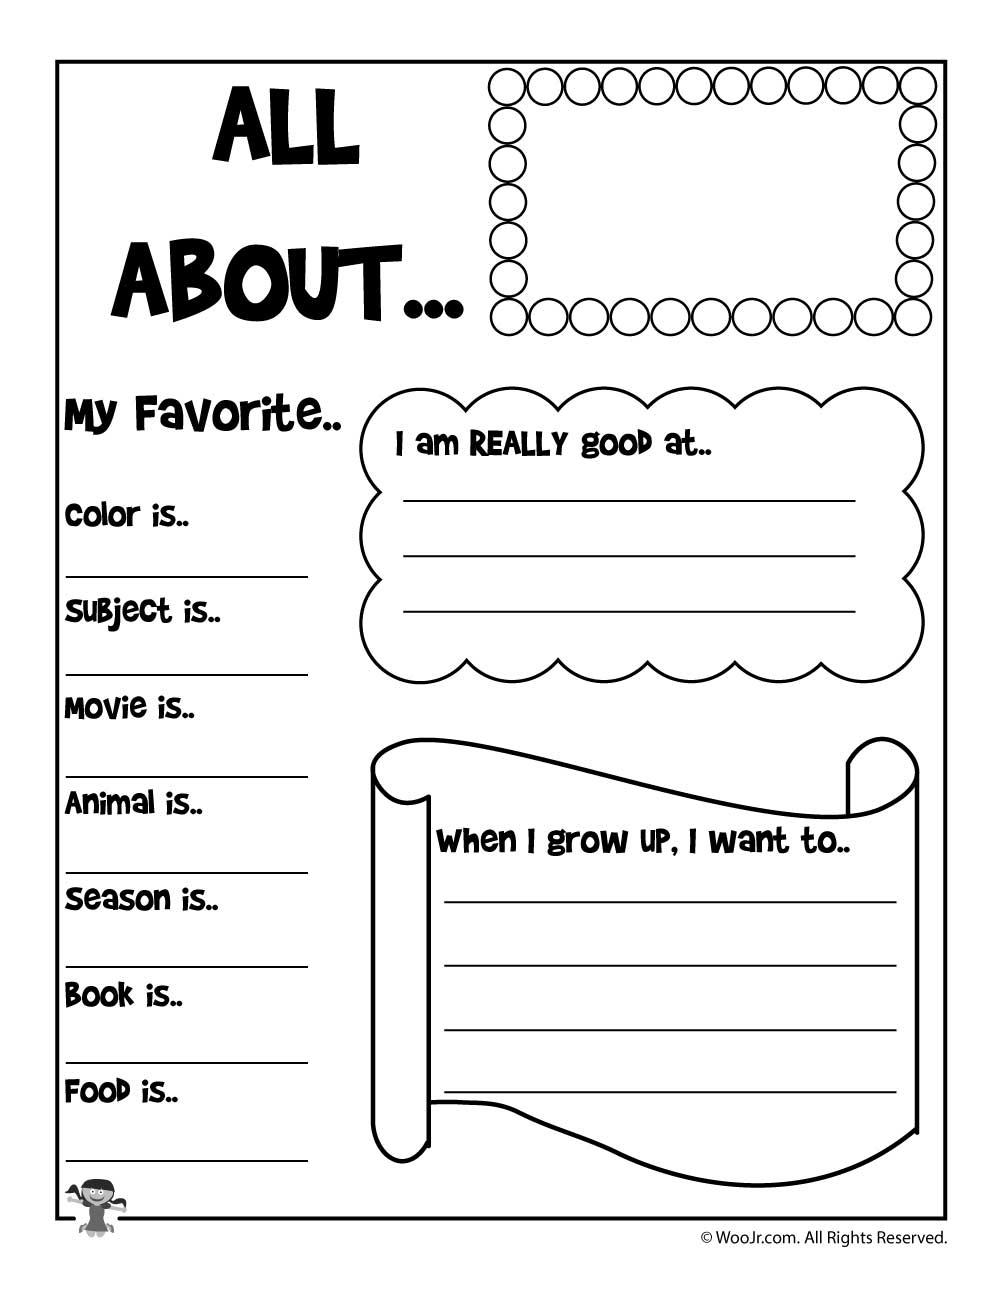 All About Me Printable Worksheet | Woo! Jr. Kids Activities | All About Me Printable Worksheets